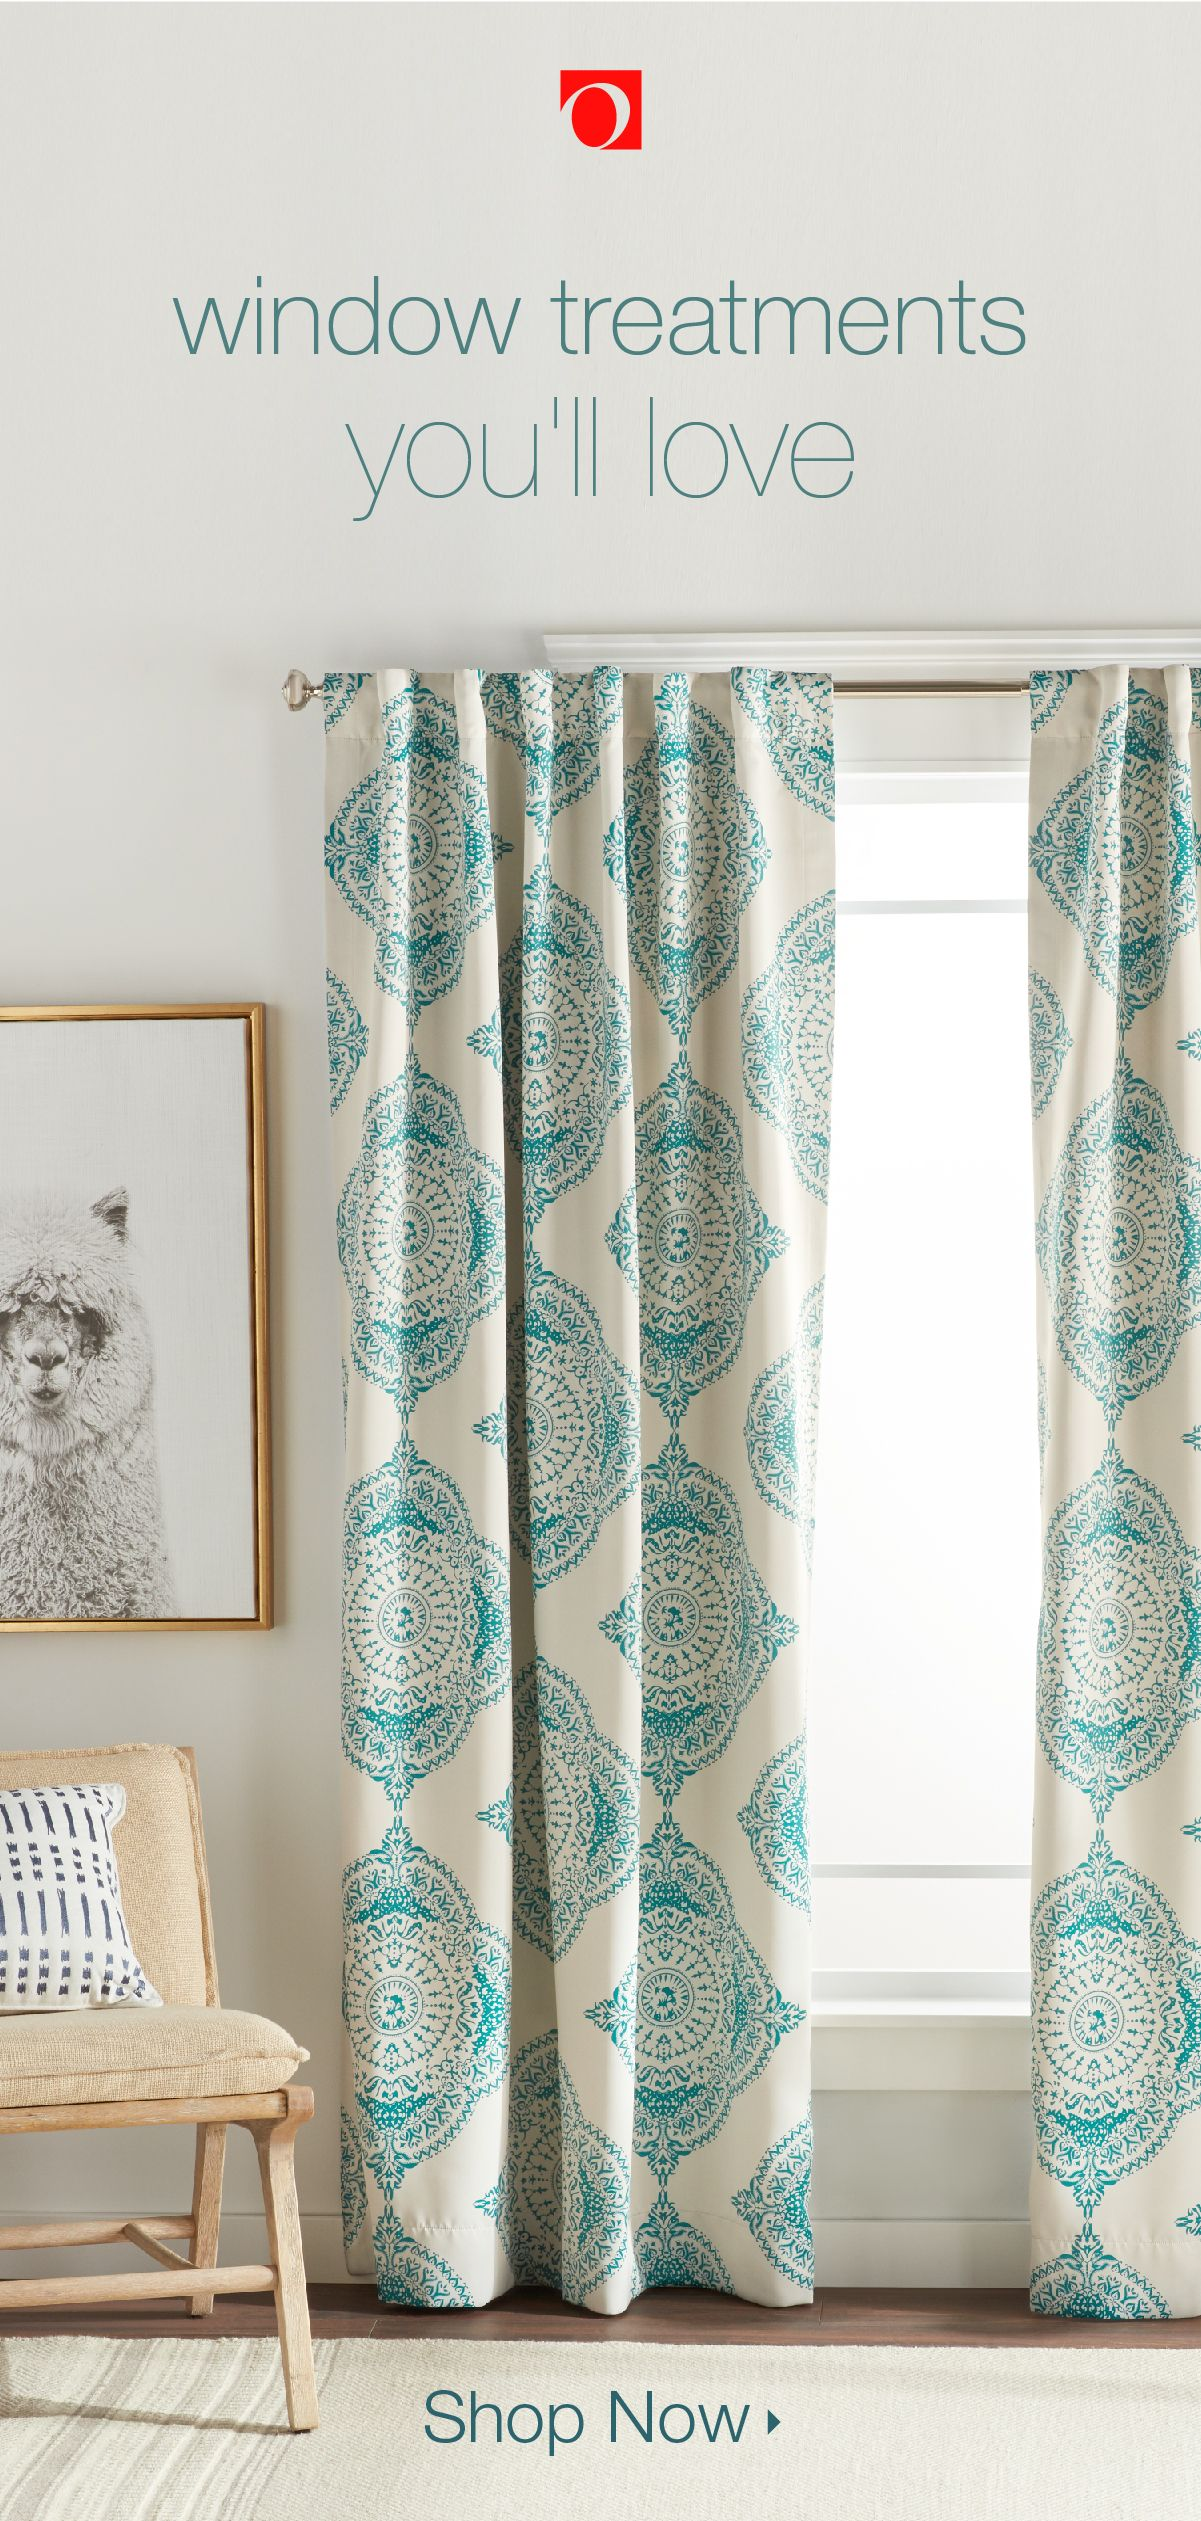 The Best Types Of Fabric Curtains For Your Home Curtains Living Room Bedroom Furnishings Discount Bedroom Furniture